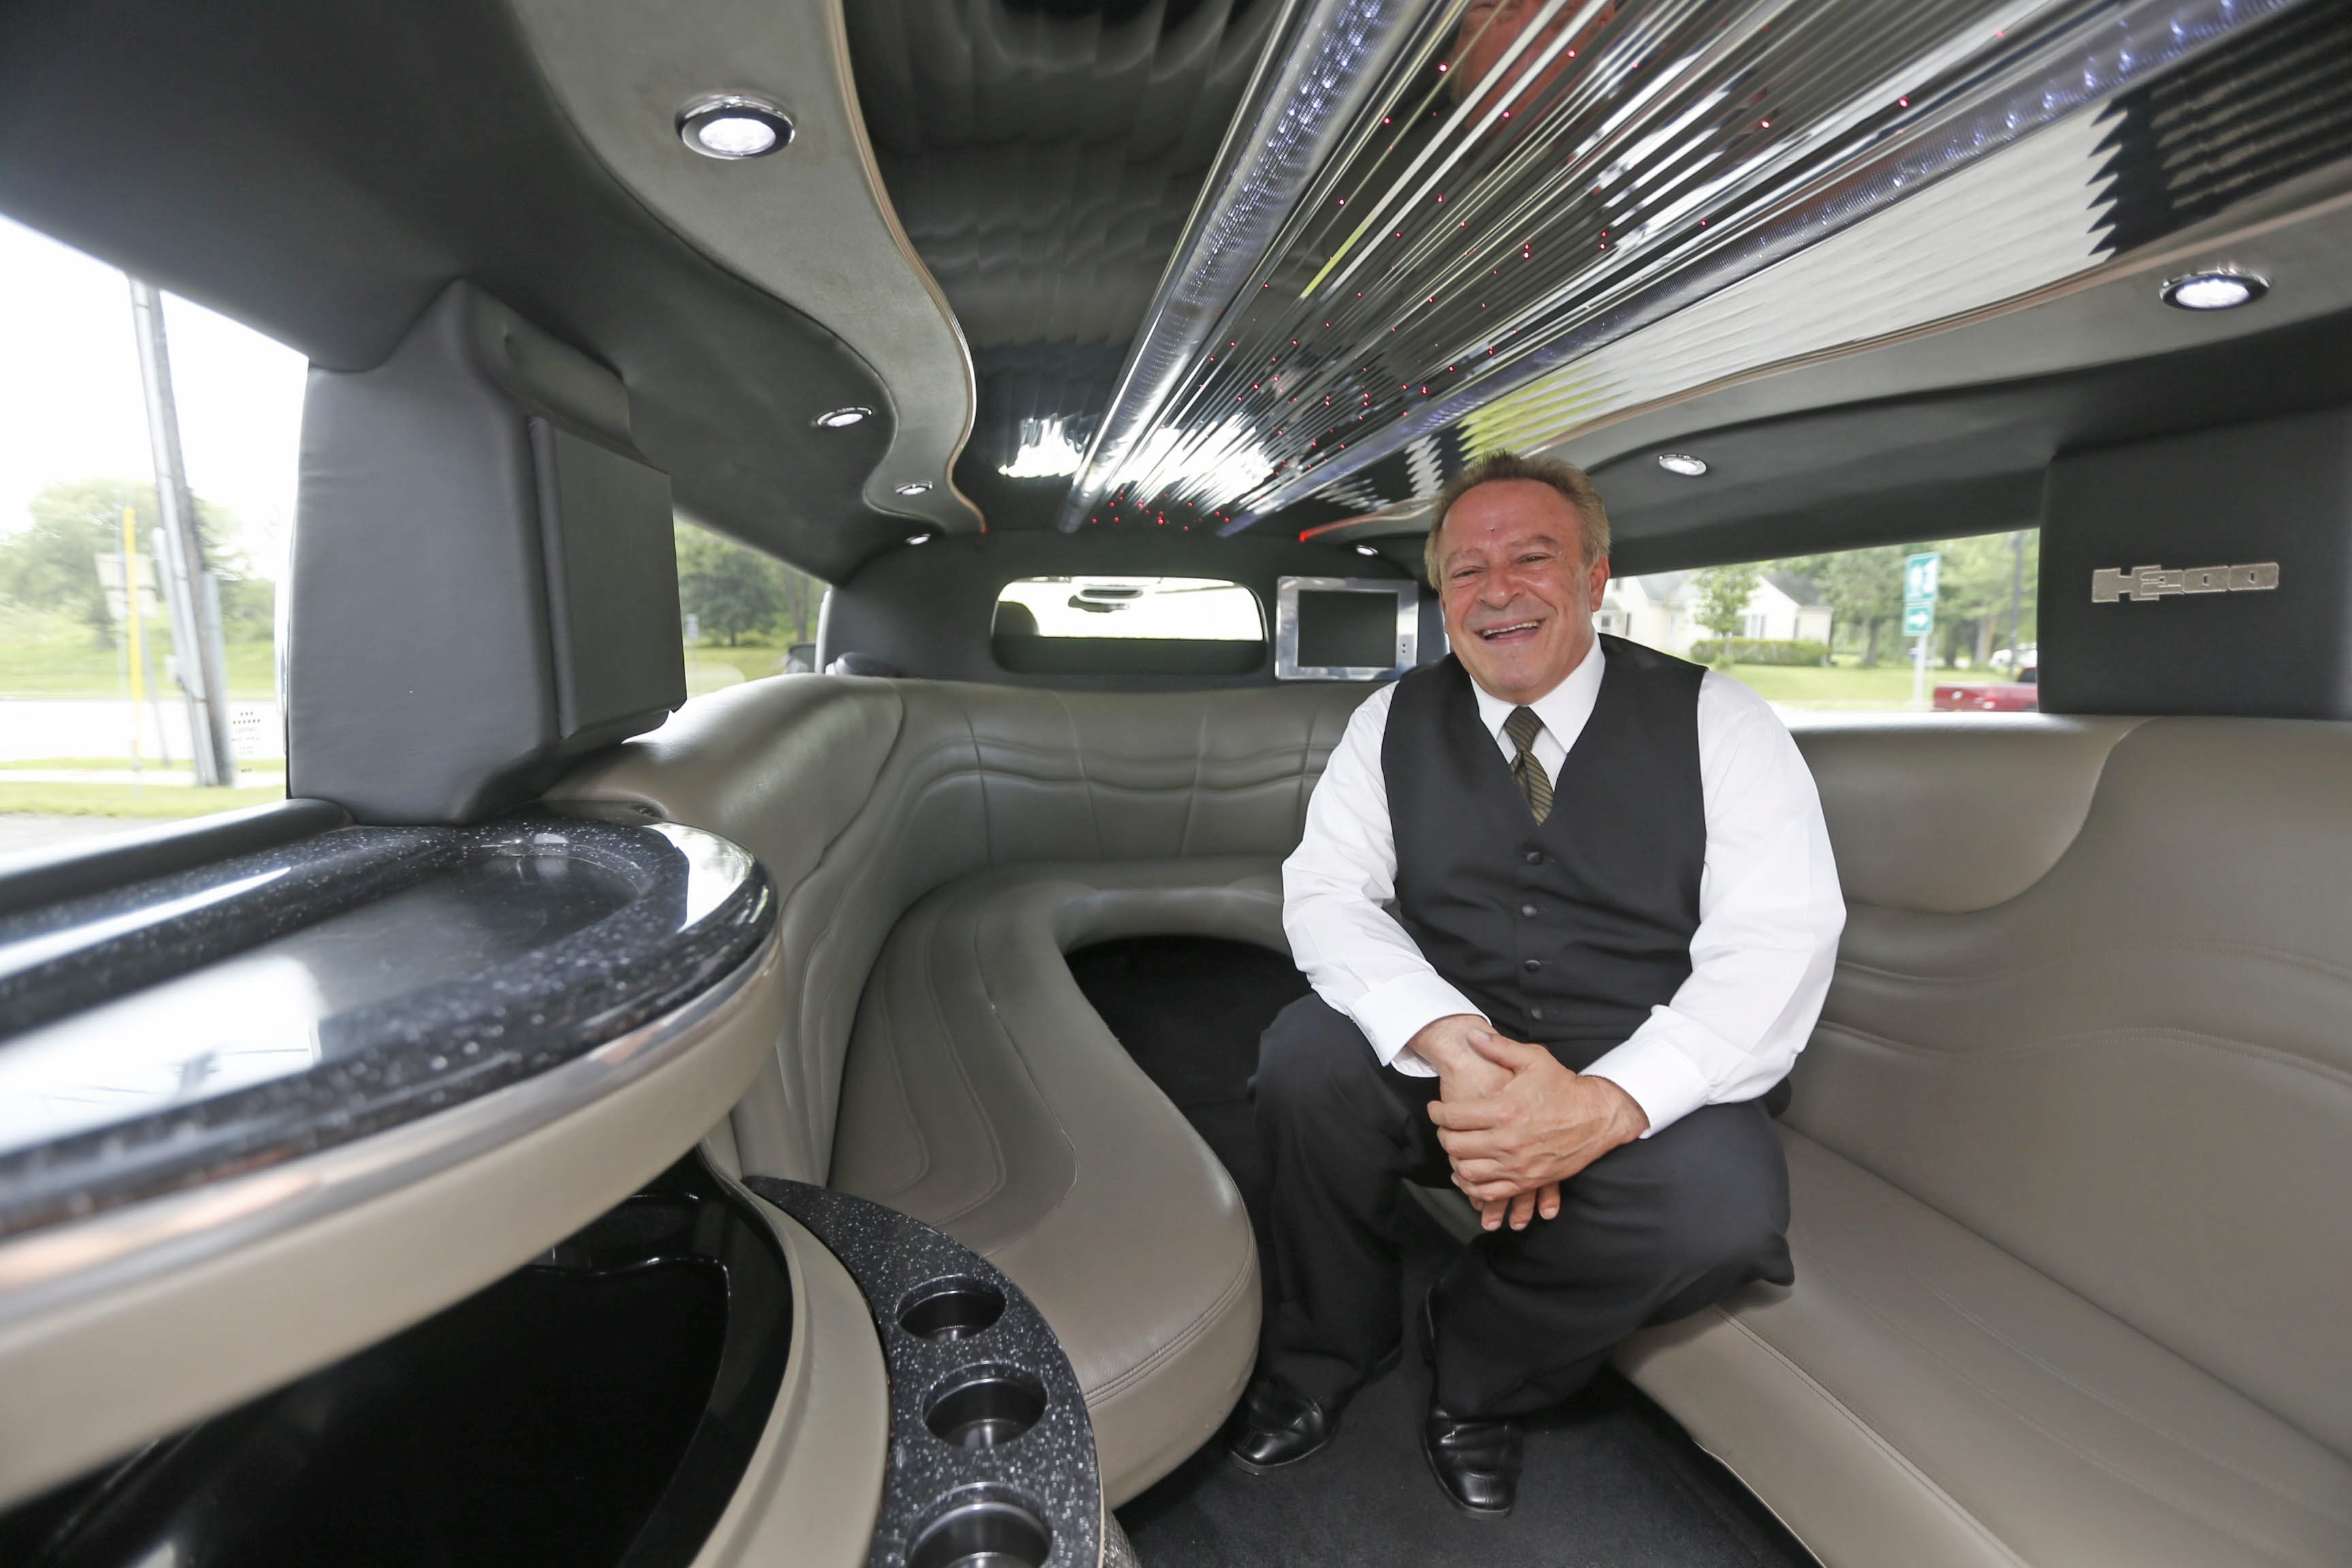 Limousine driver David Zaccarine's favorite gigs are wine tours and proms. A Lackawanna native, Zaccarine worked in Southern California before returning to Western New York. He's known for keeping a cooler at his side, stocked with supplies that his customers may need.